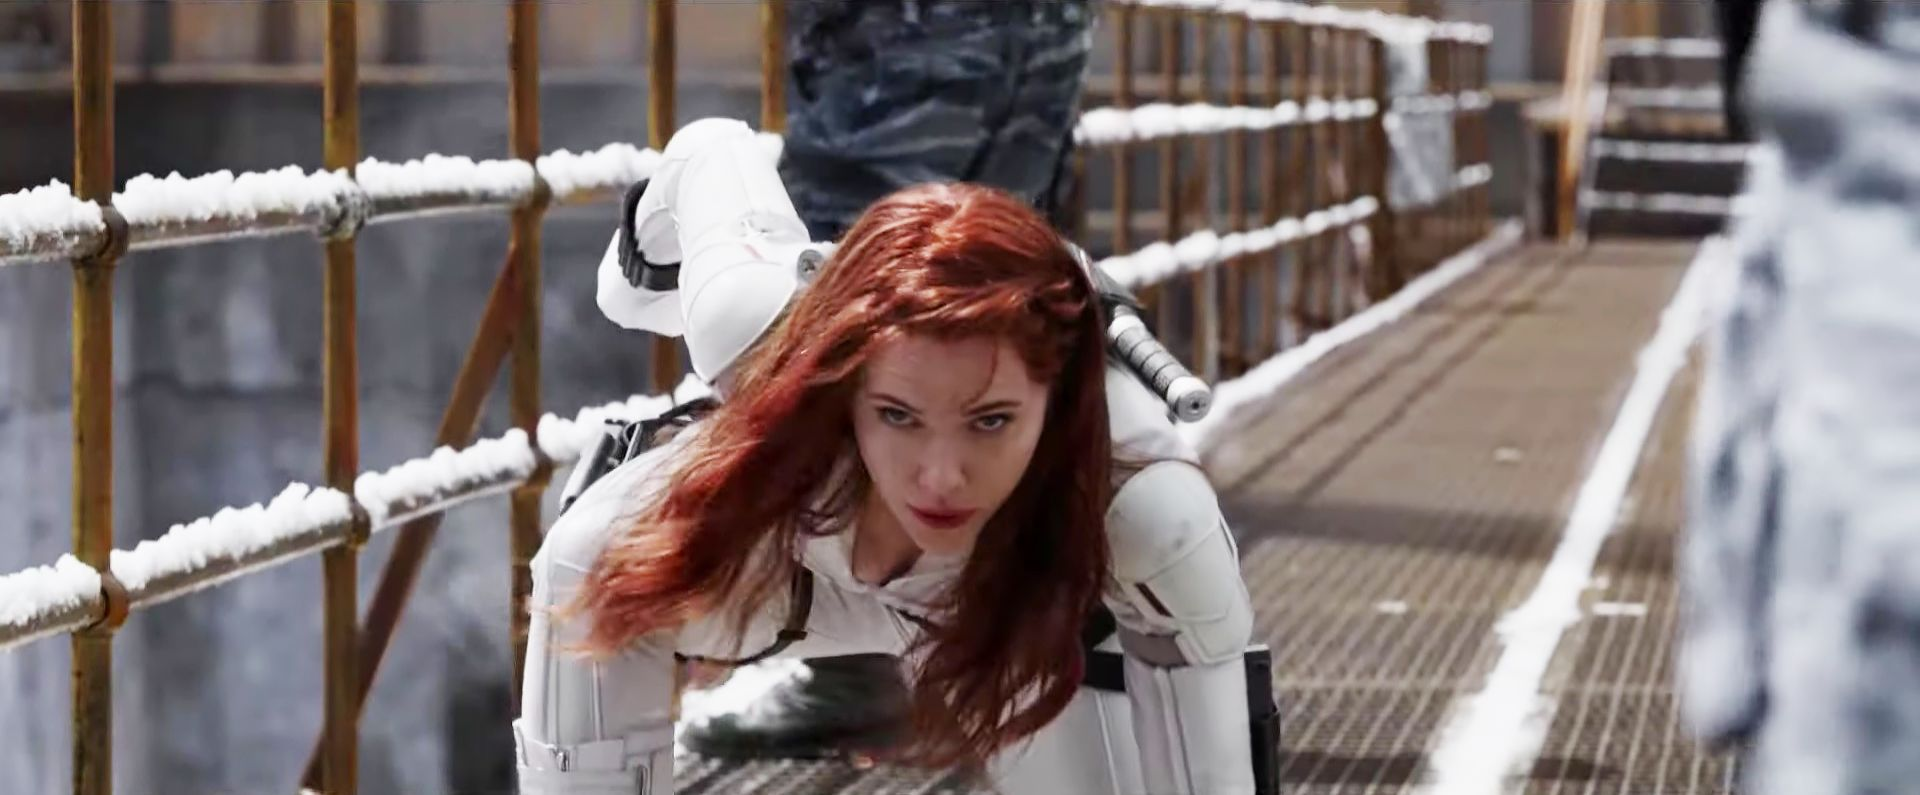 Black Widow's trailer hints at the return of fan-favourite MCU character